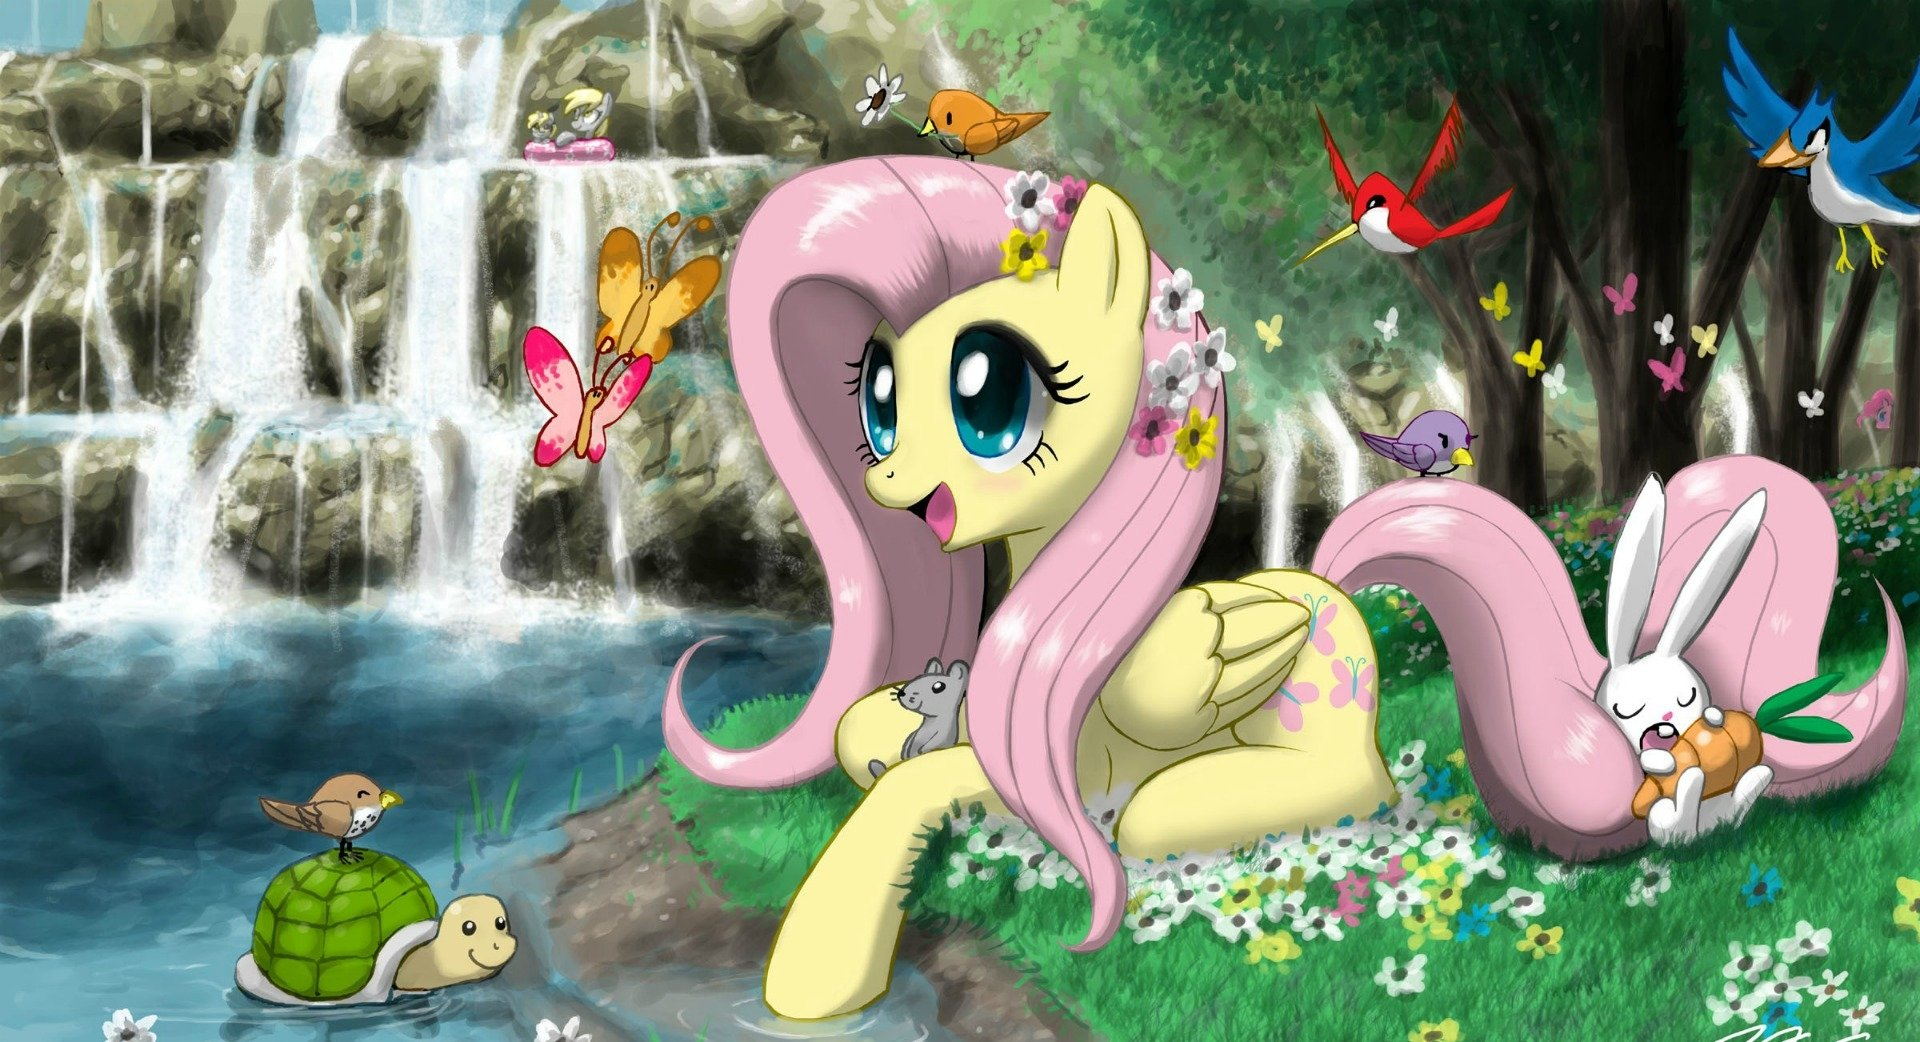 TV Show - My Little Pony: Friendship is Magic  My Little Pony Angel Bunny Derpy Hooves Wallpaper